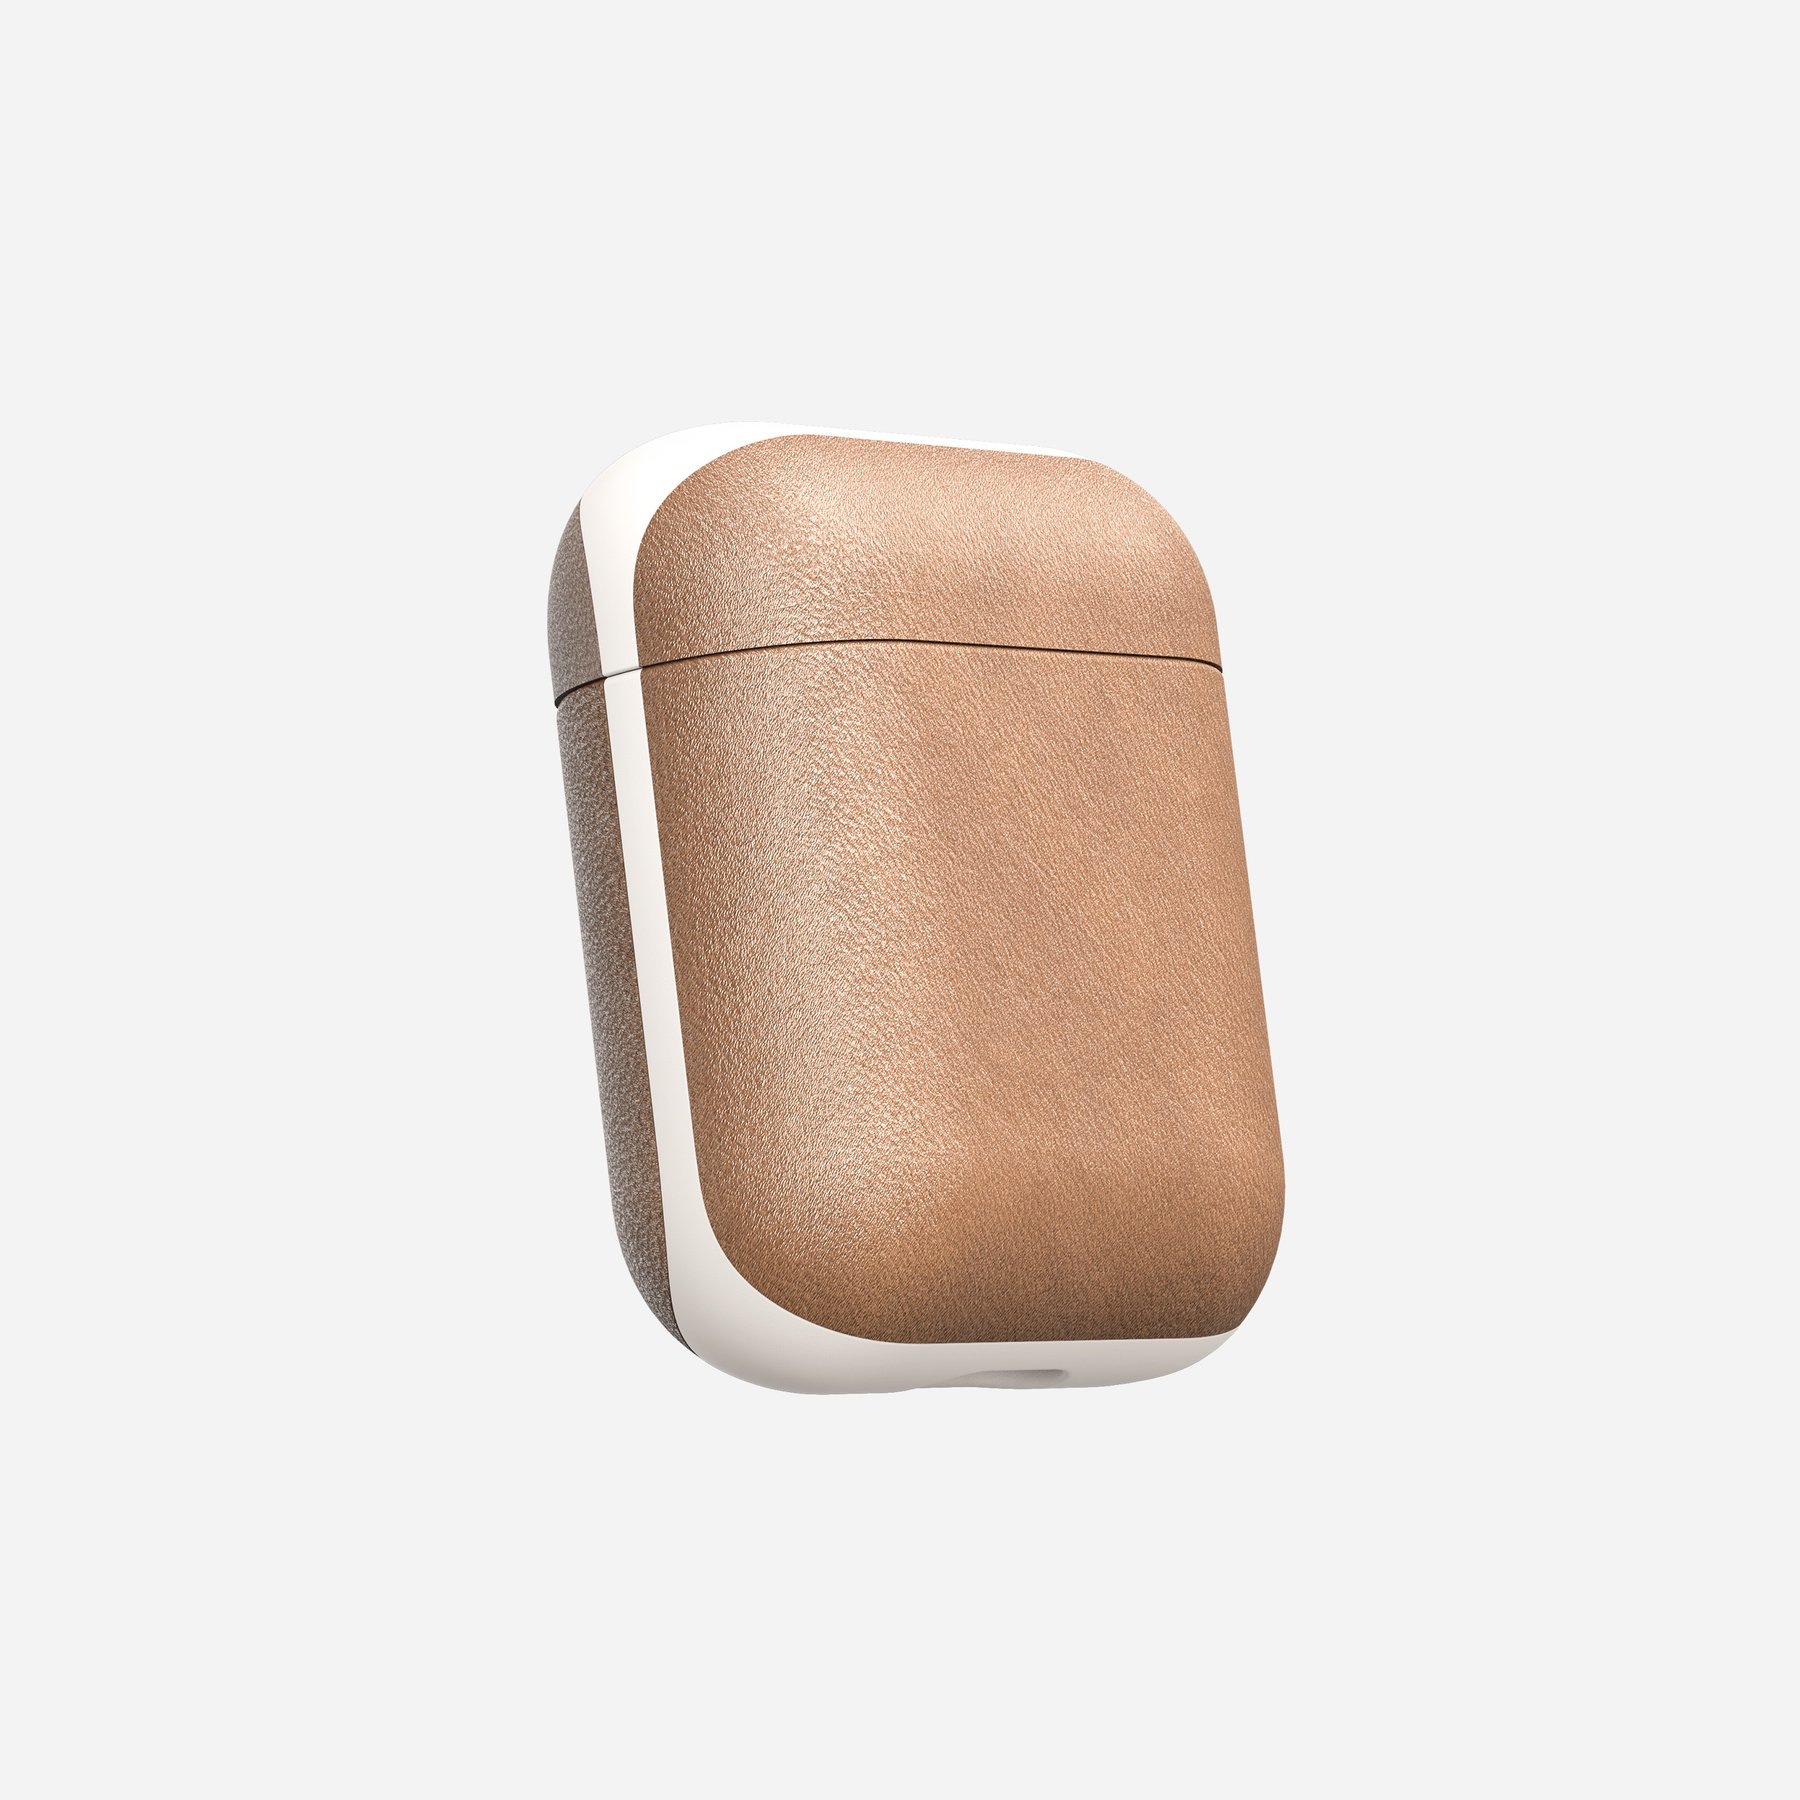 Nomad Airpod Case Natural Leather